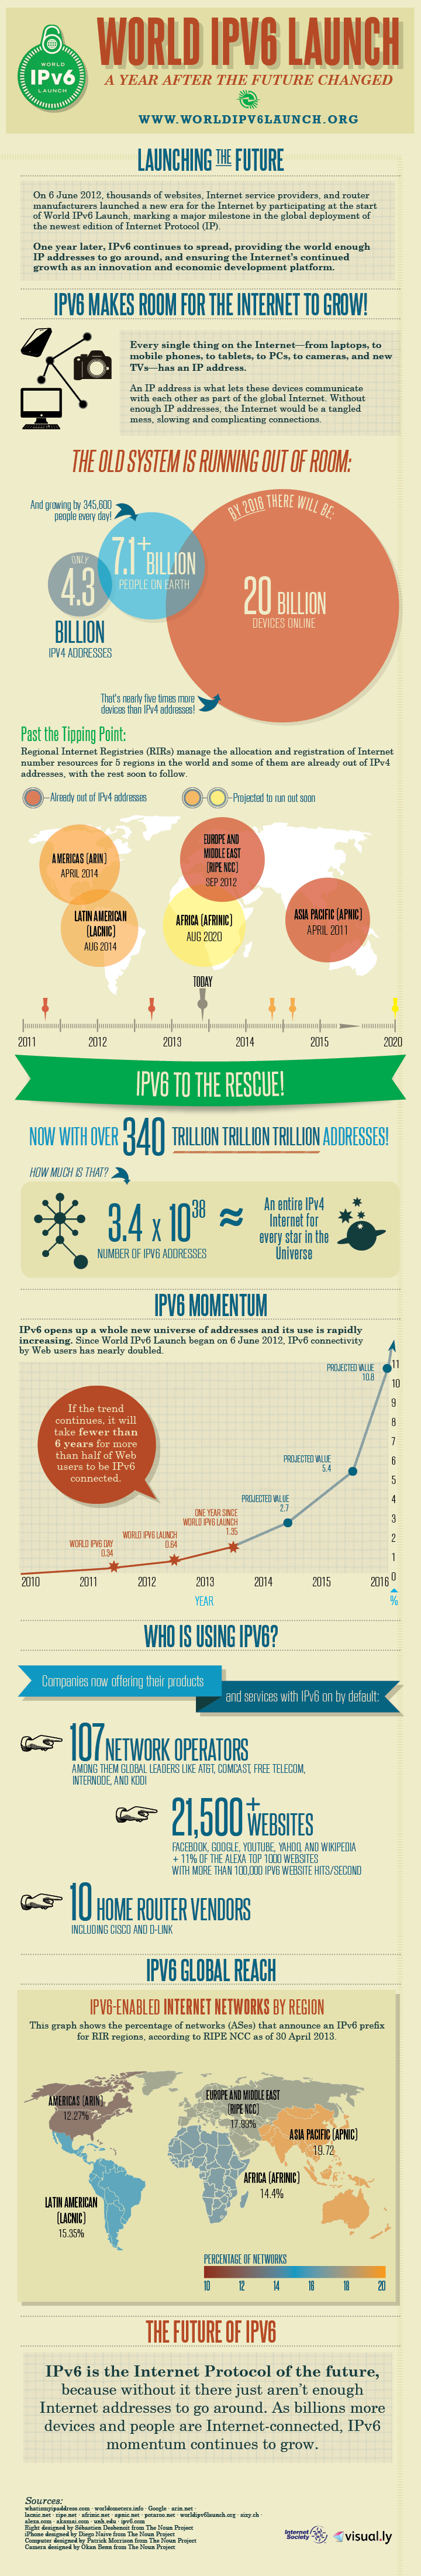 ipv6 launchiversary infographic